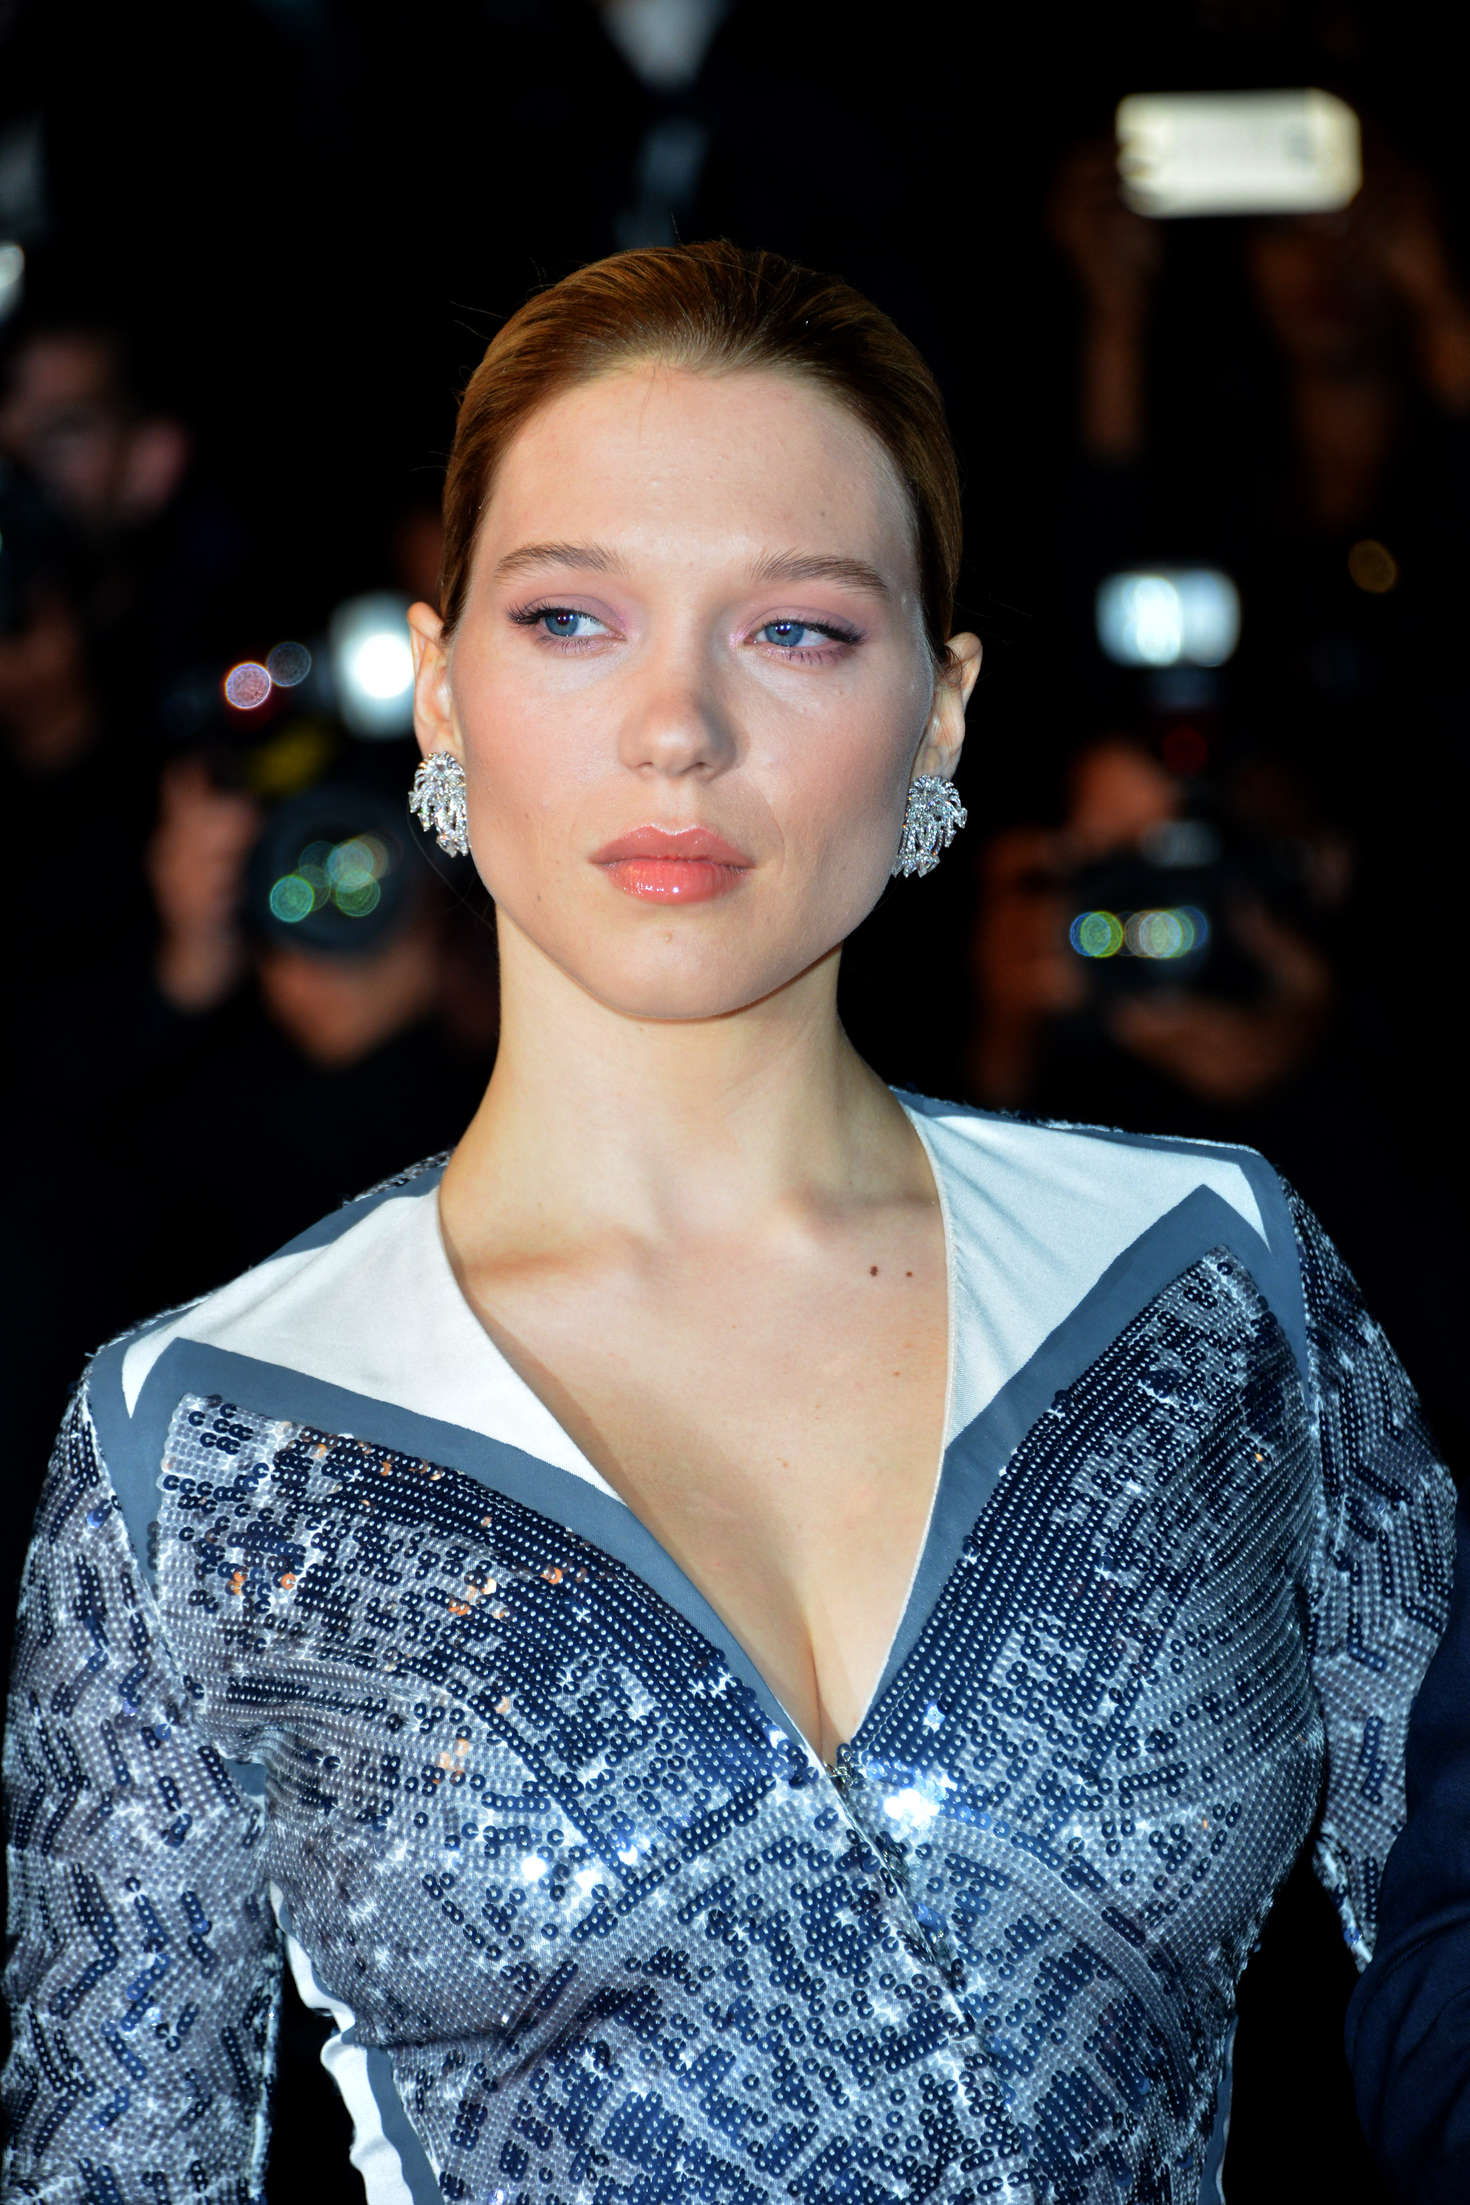 Lea Seydoux In Elle Magazine France February 2014 Issue: 'It's Only The End Of The World' Premiere At